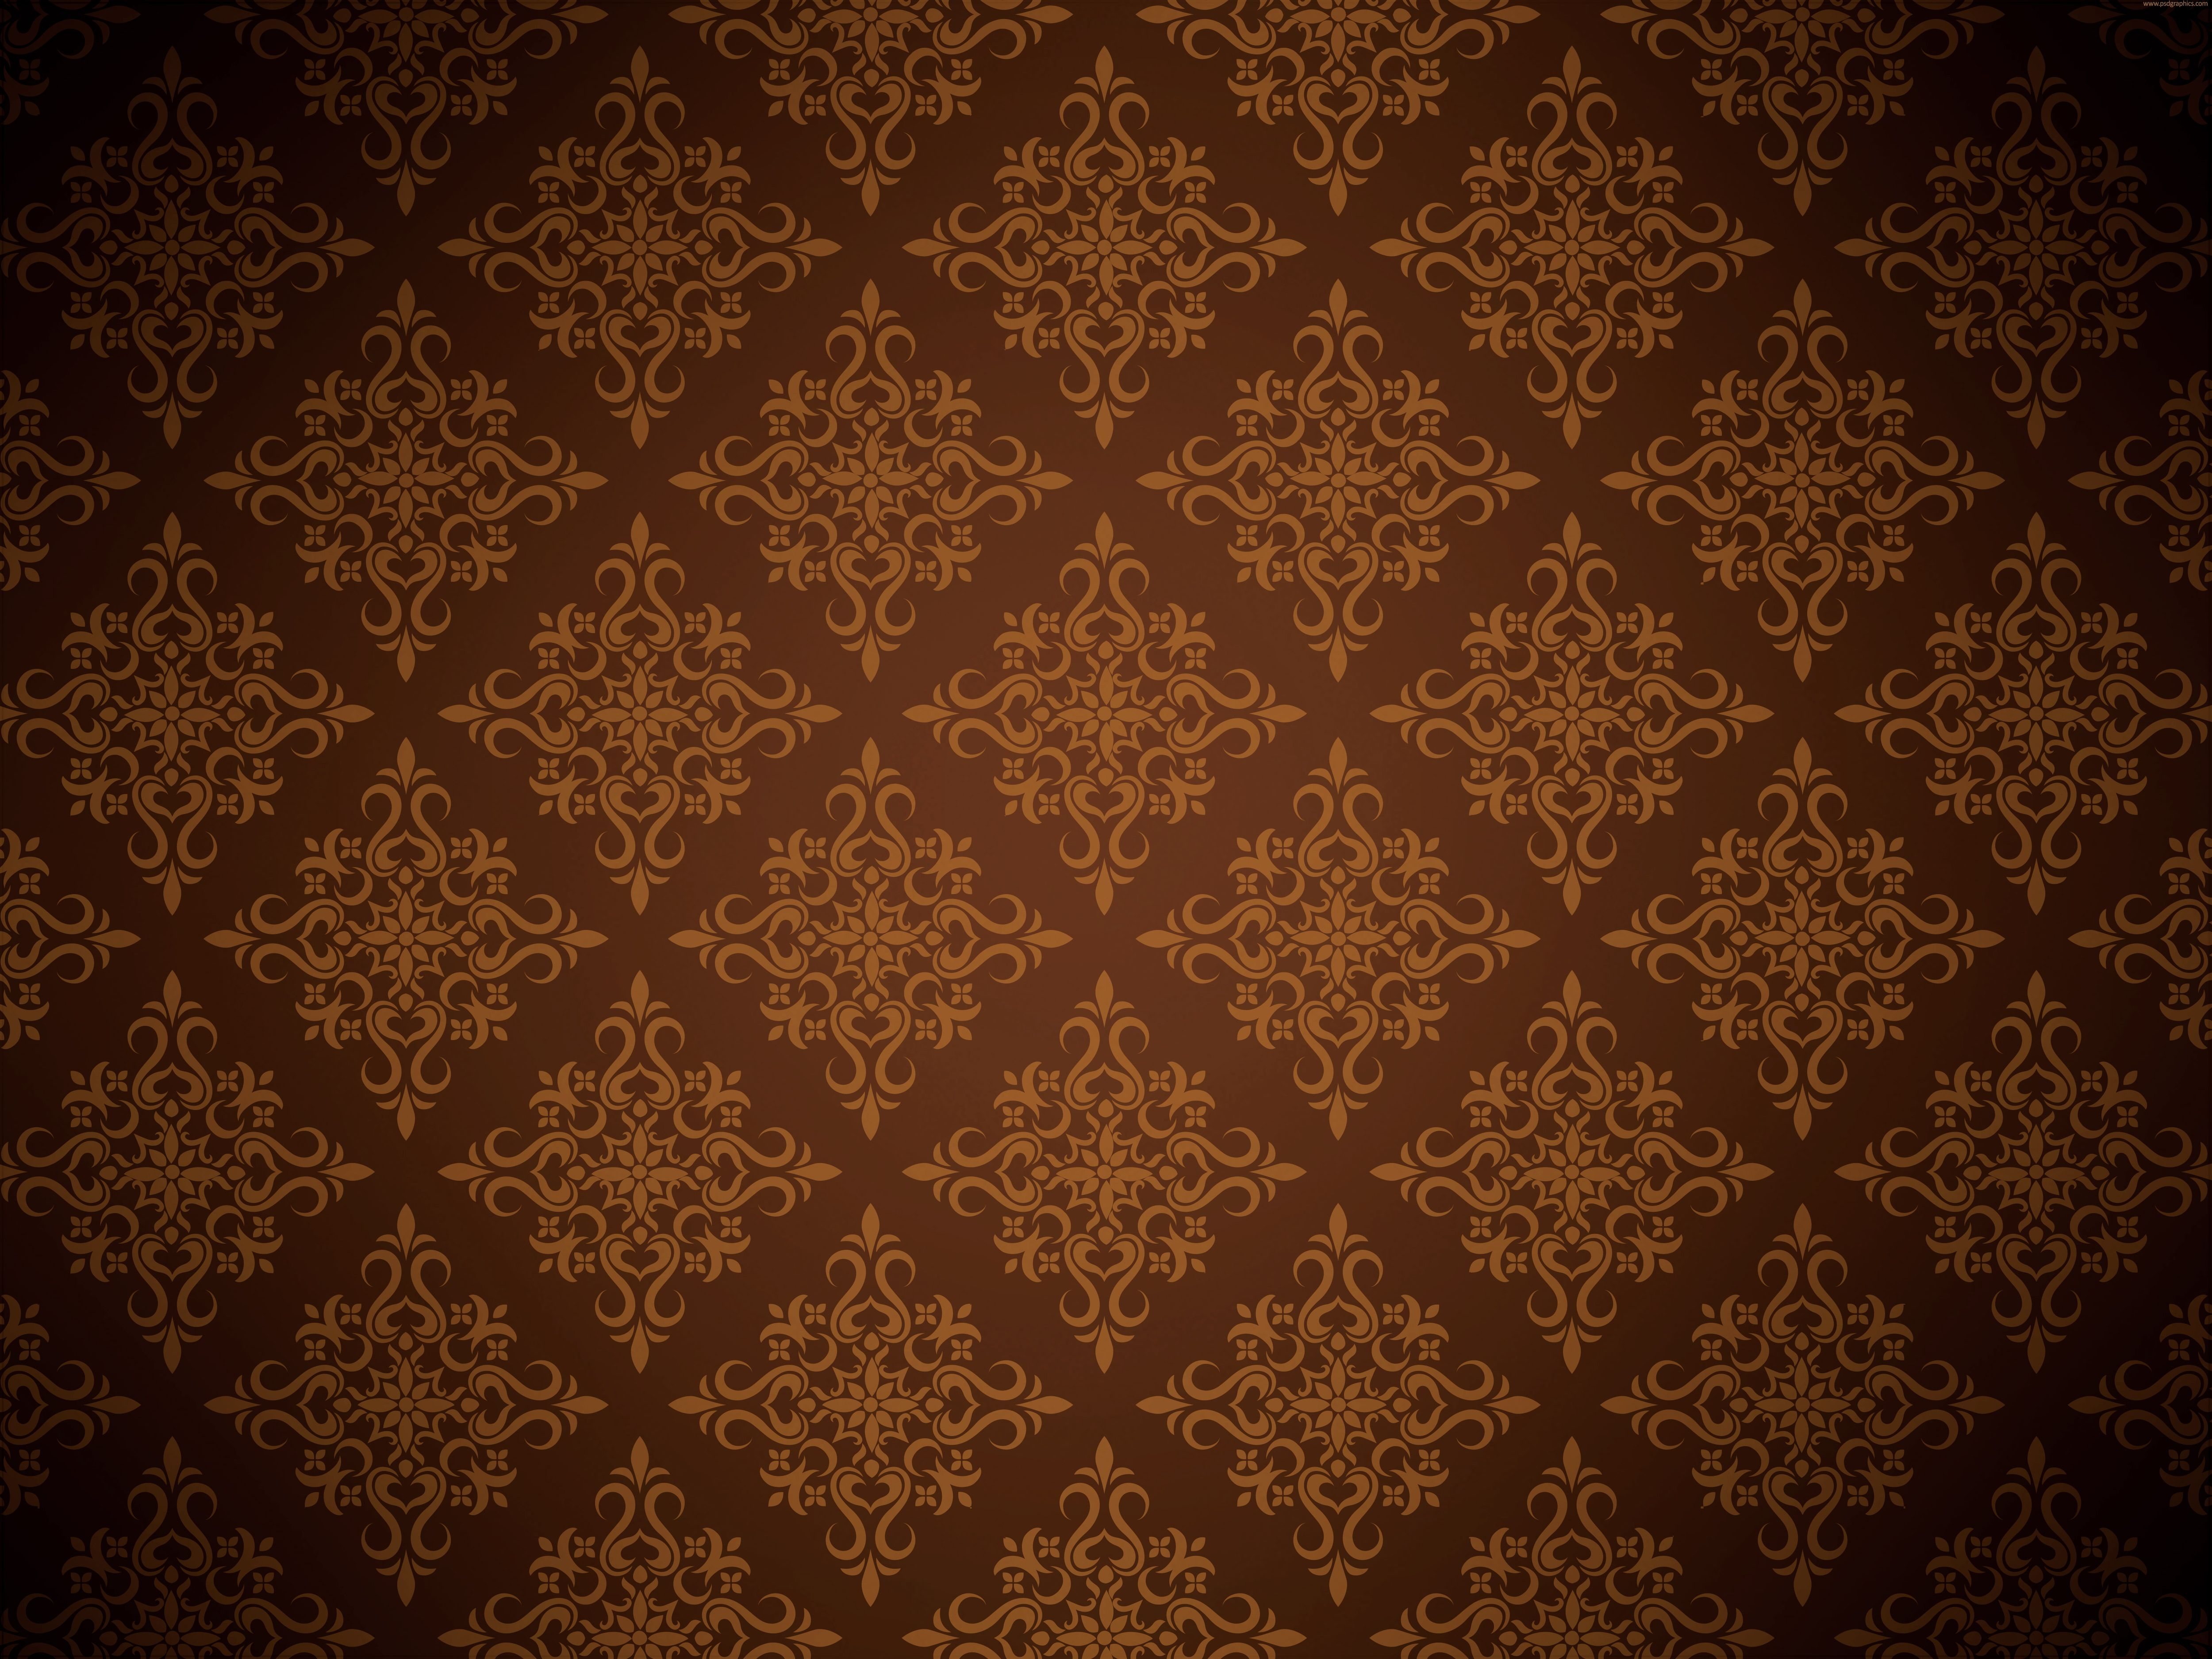 Brown Floral Picture Design Textured Wallpaper Textured Background